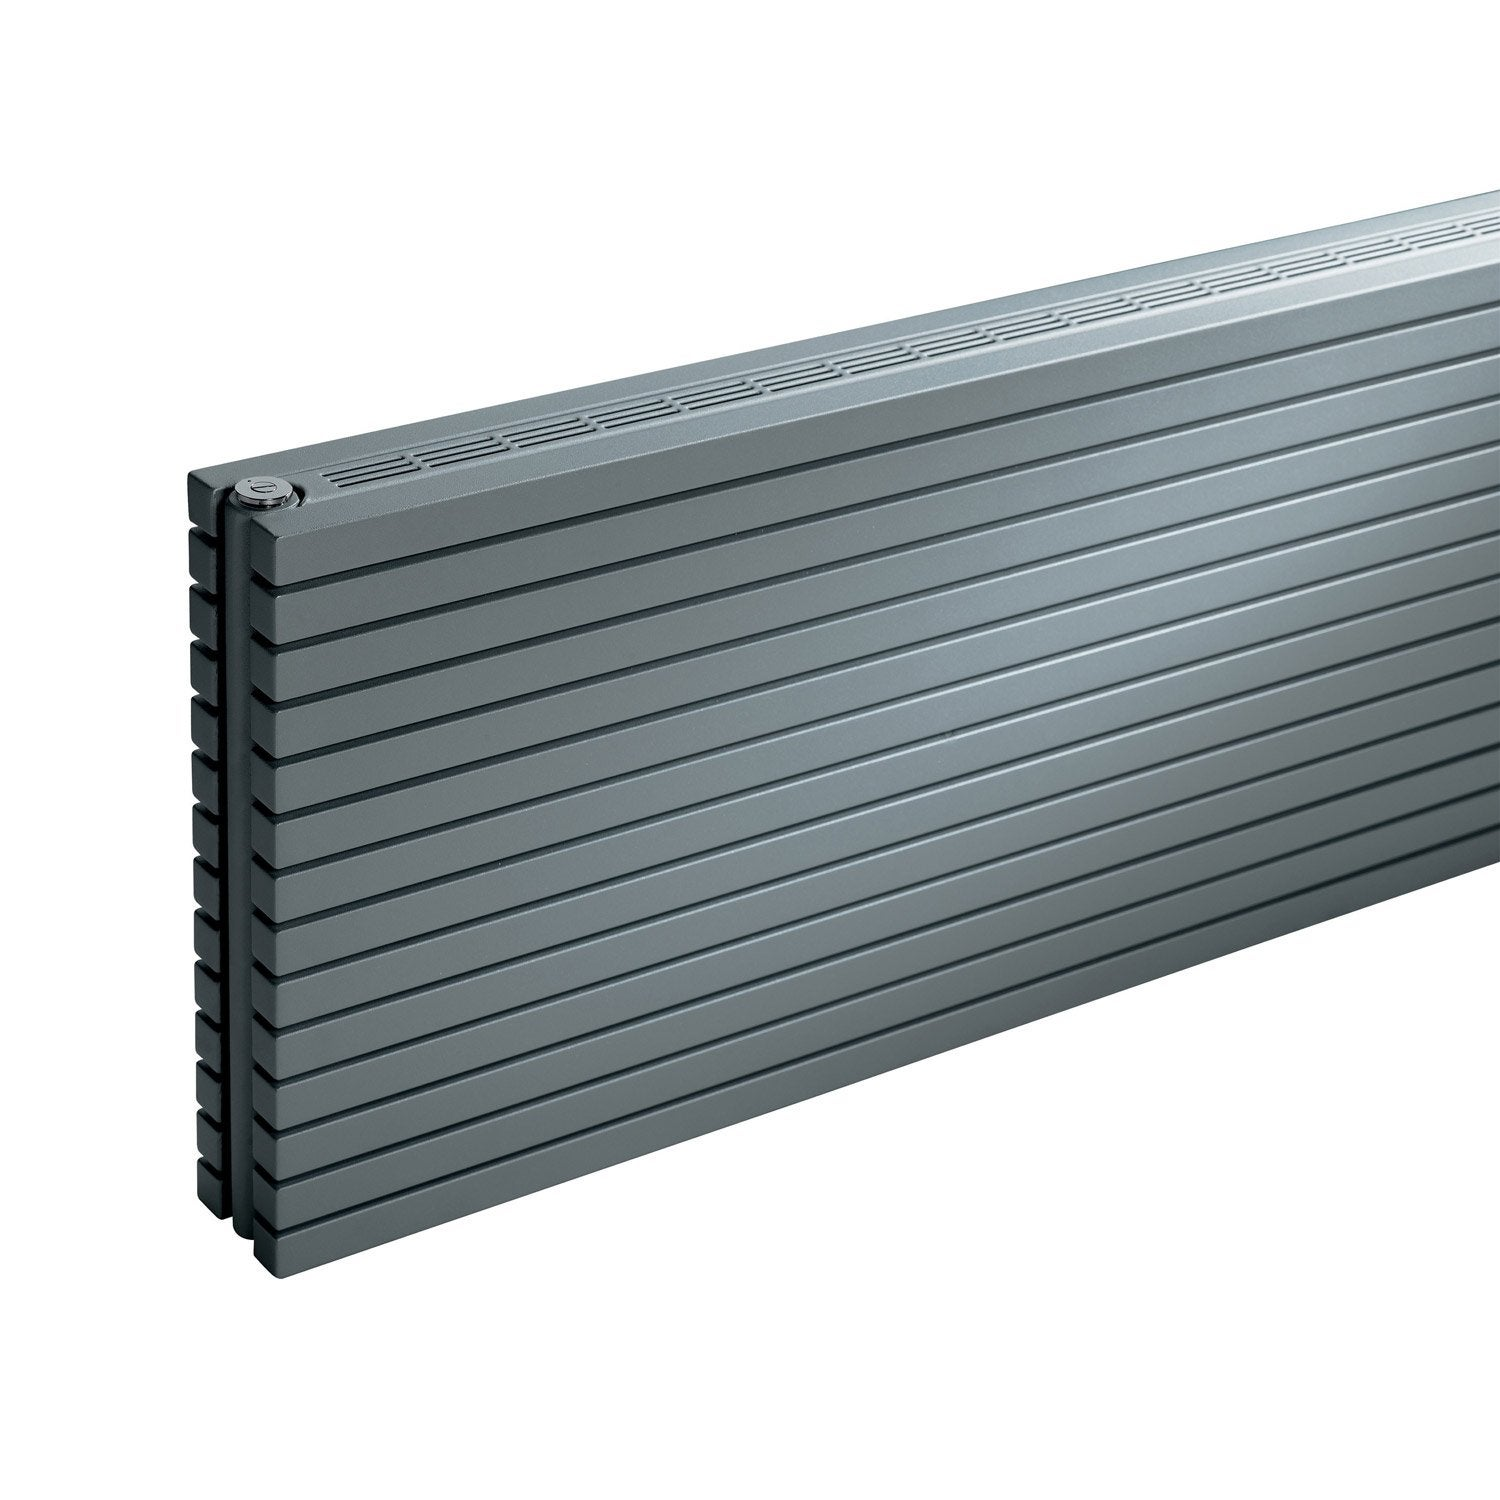 radiateur chauffage central acier vasco carr 404w leroy merlin. Black Bedroom Furniture Sets. Home Design Ideas